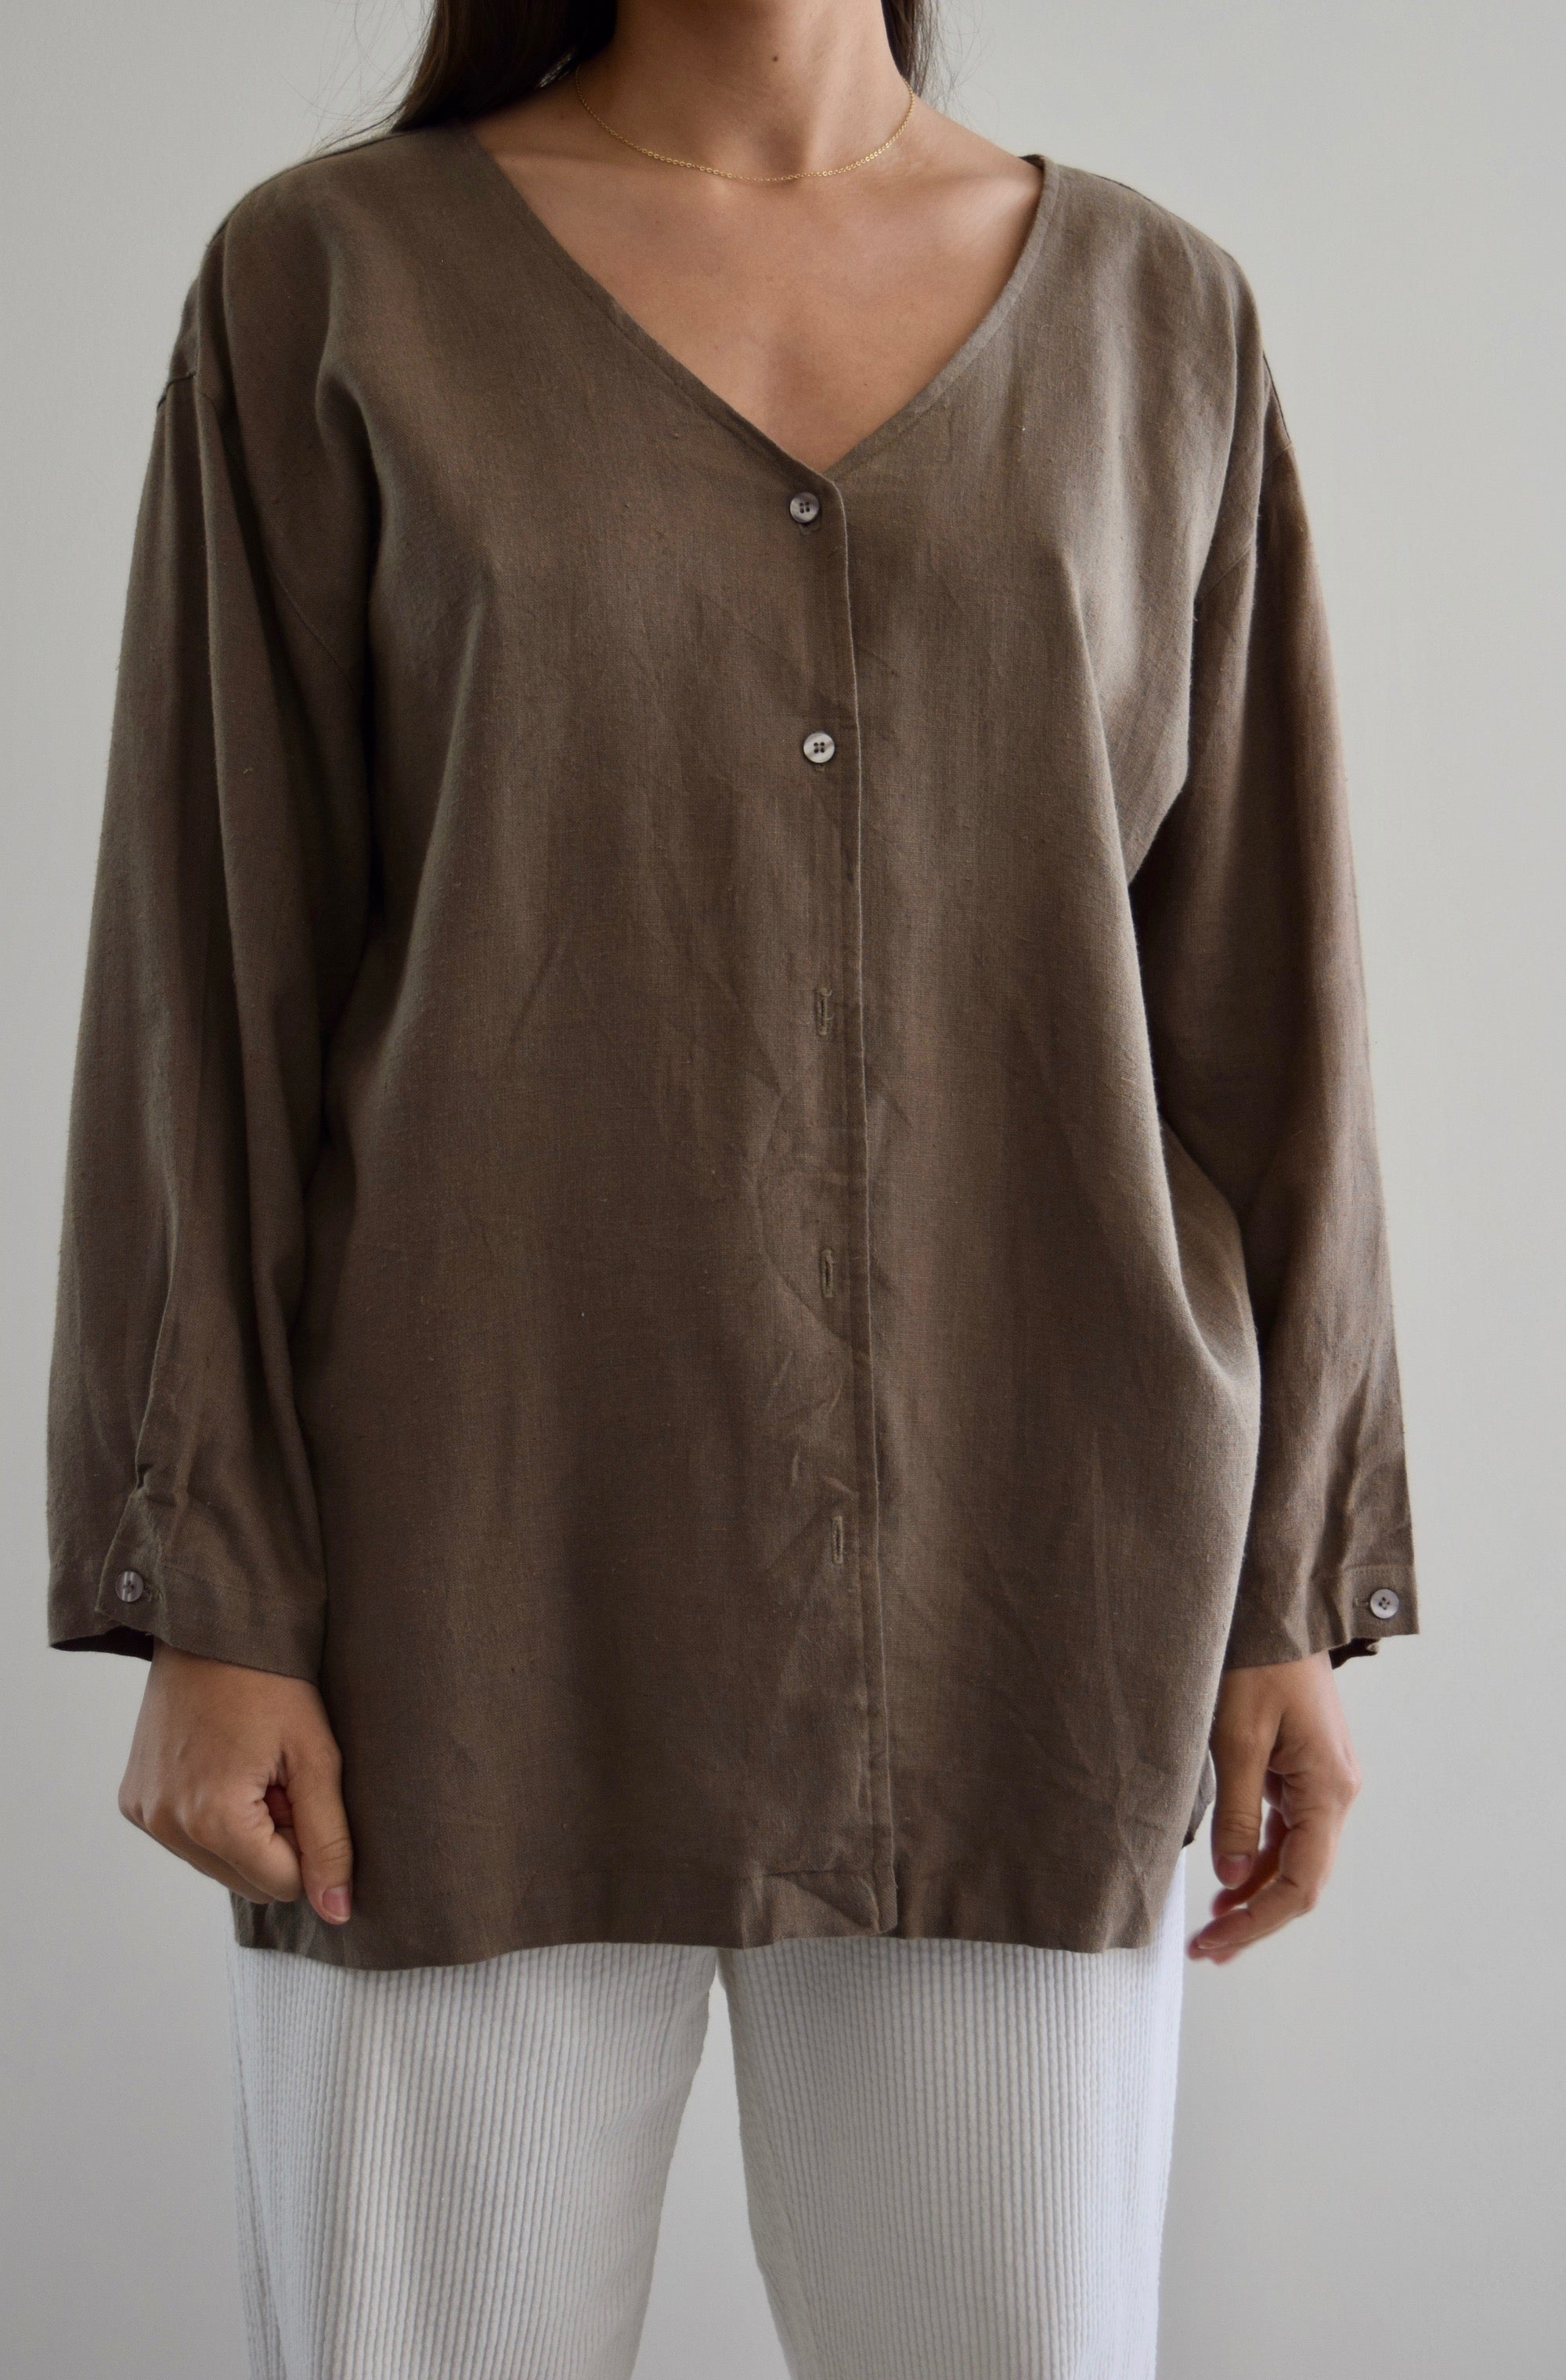 Cedar Linen Button Up Top